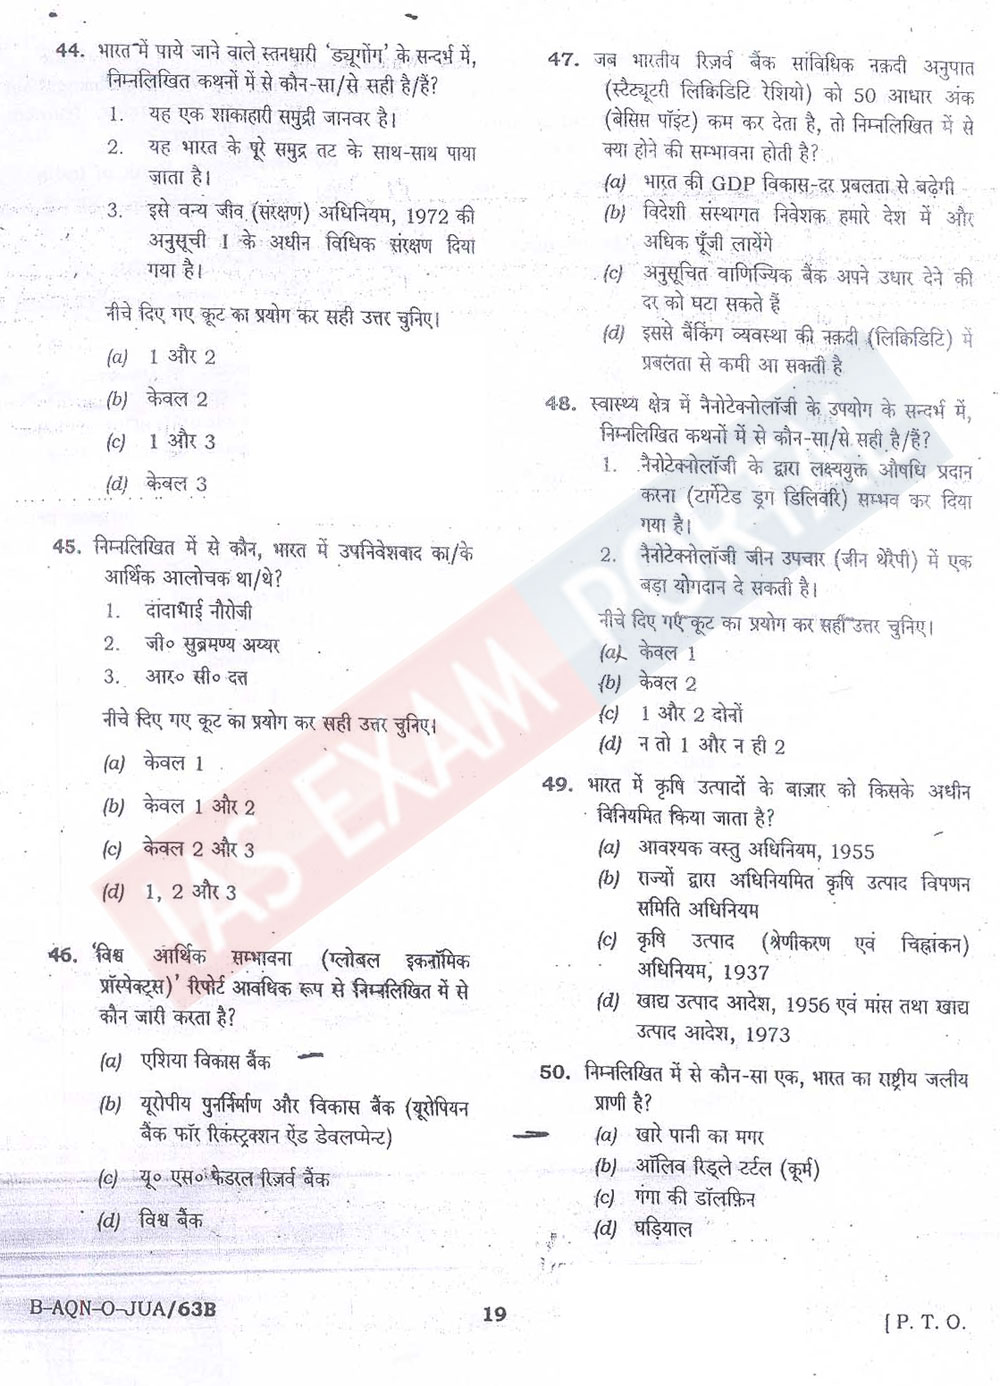 ias essay syllabus Exampariksha is an online portal for upsc civil services exam preparation get free study material, online mock tests, previous year papers, recommended books and syllabus download clear upsc ias and other state psc exams in your first attempt.